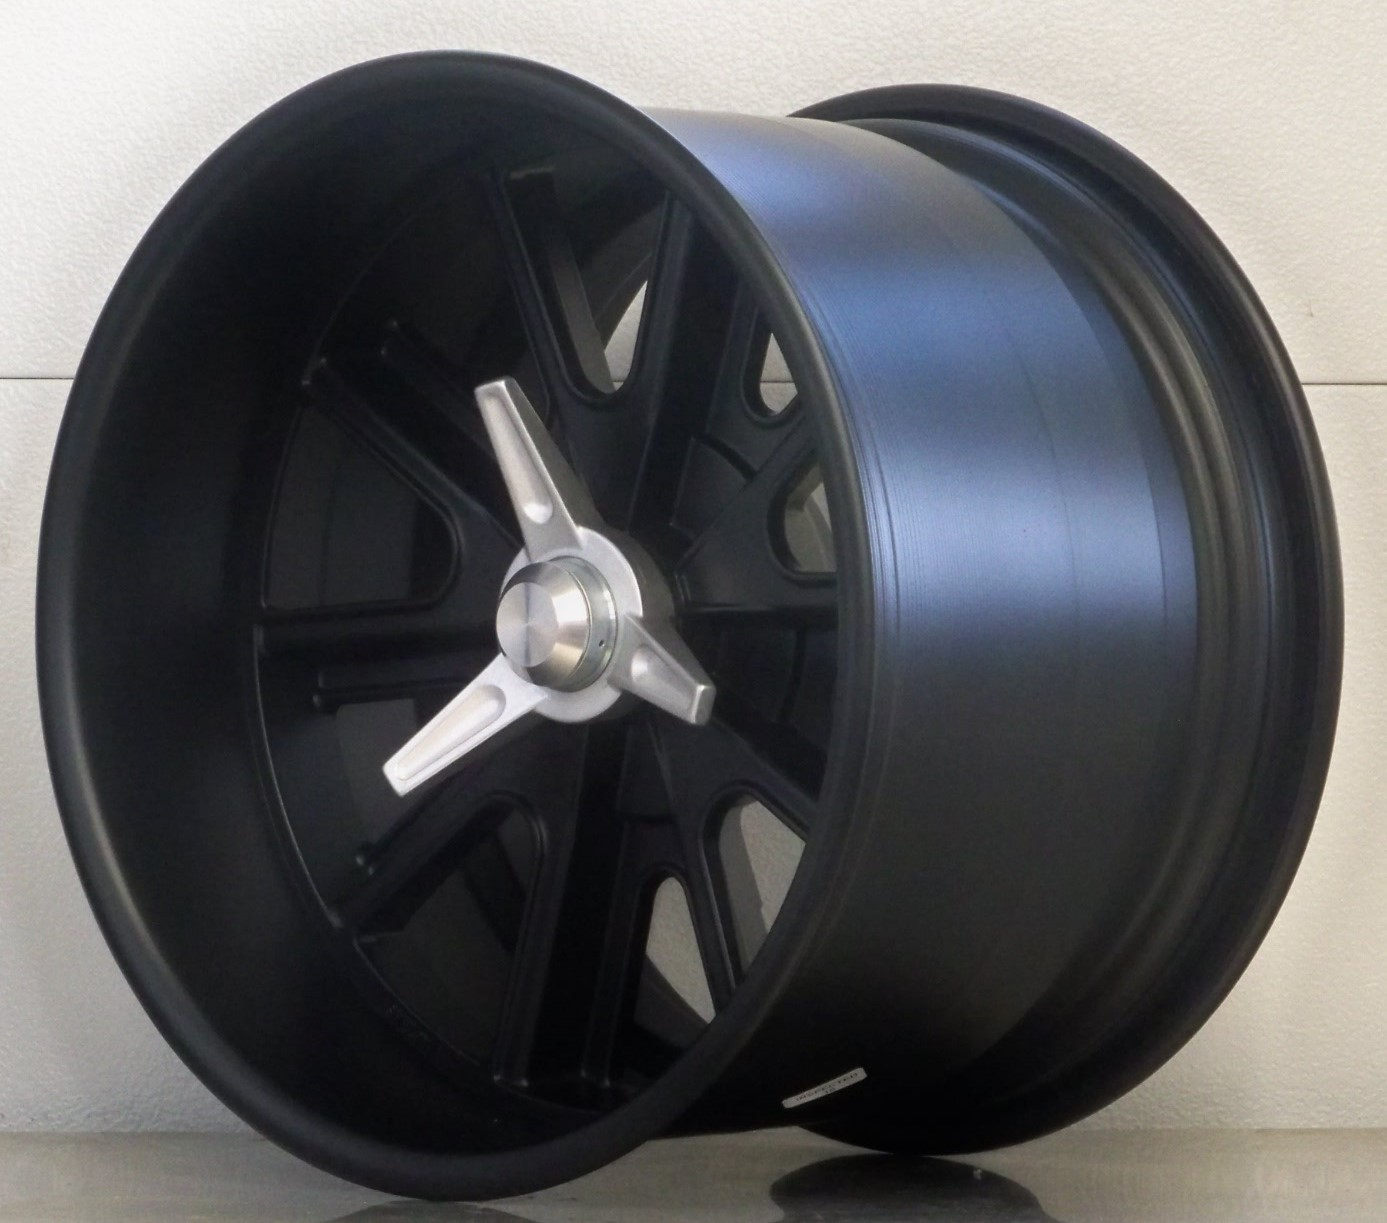 407 pin drive 18 inch kit Black with adapters spinners